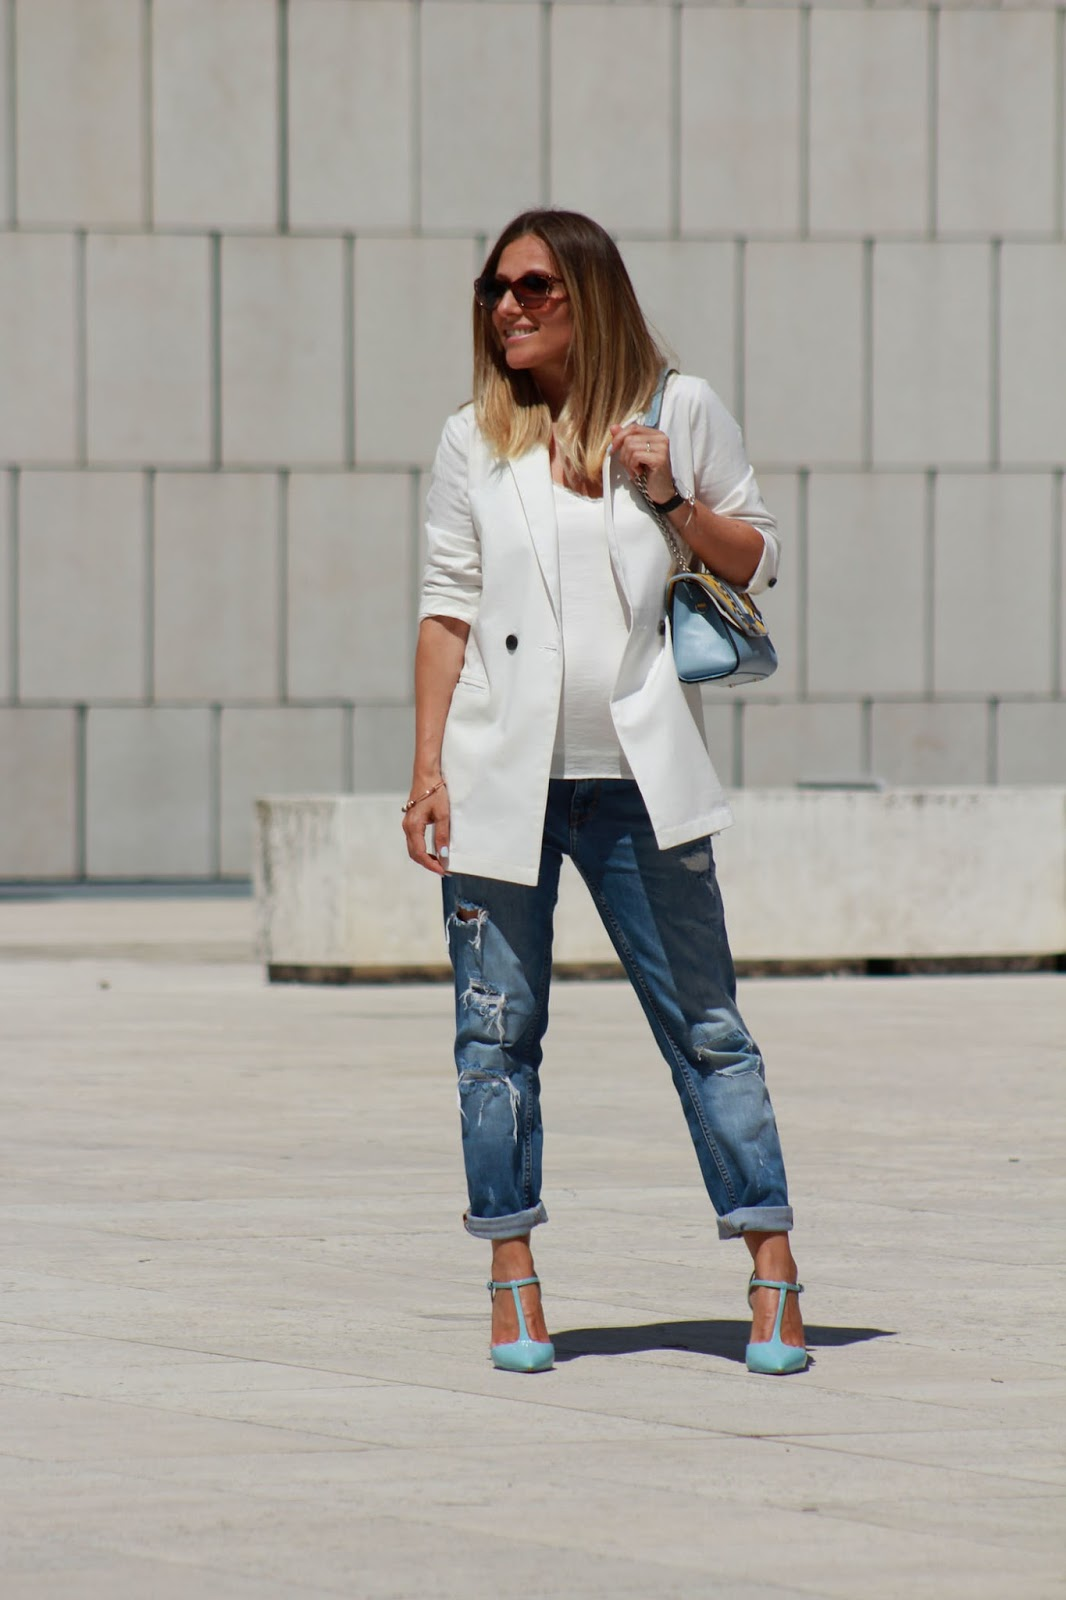 Come indossare un blazer - Eniwhere Fashion